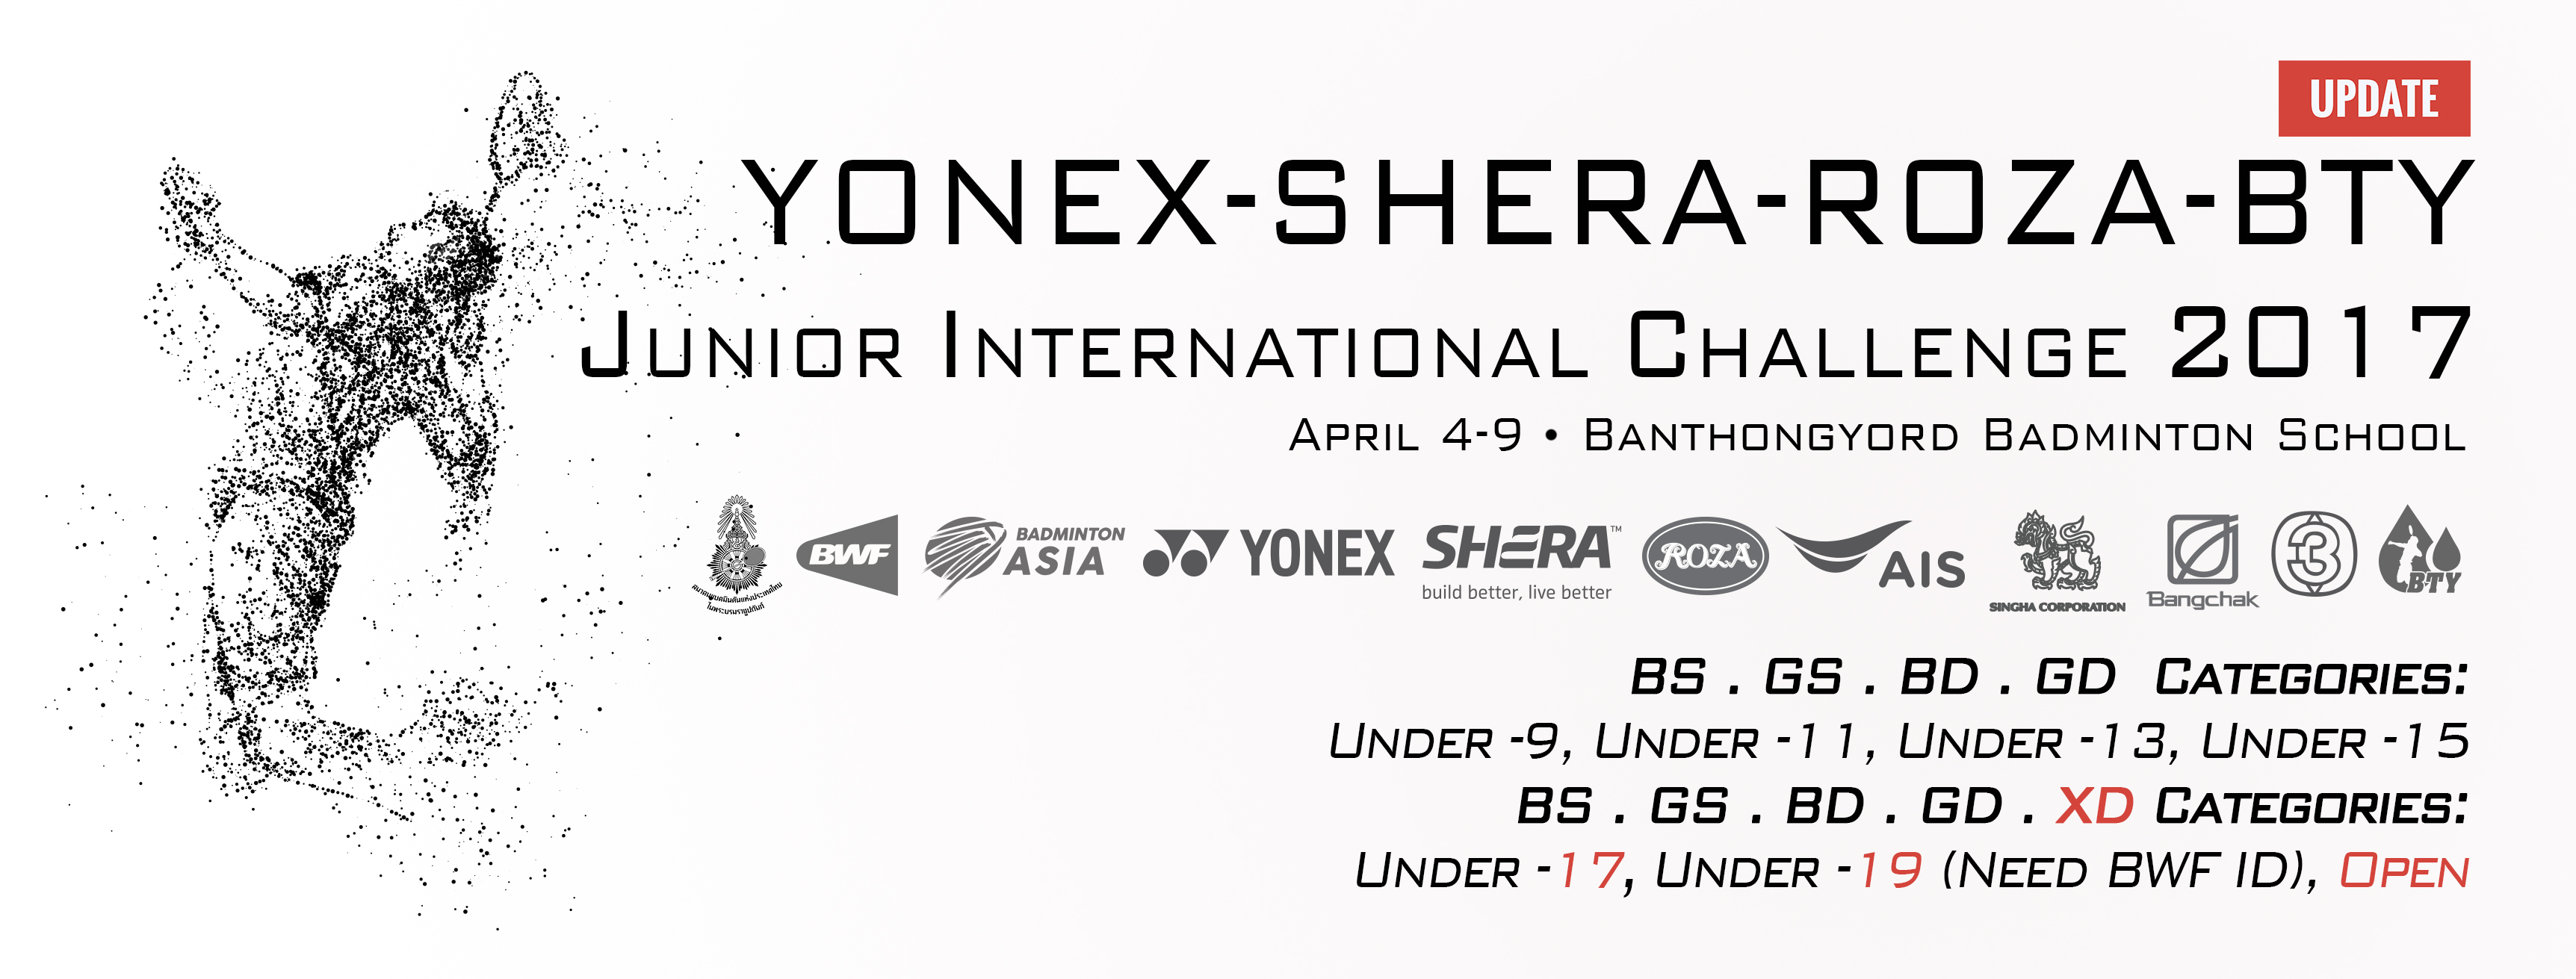 YONEX-SHERA-ROZA-BTY International Championsh